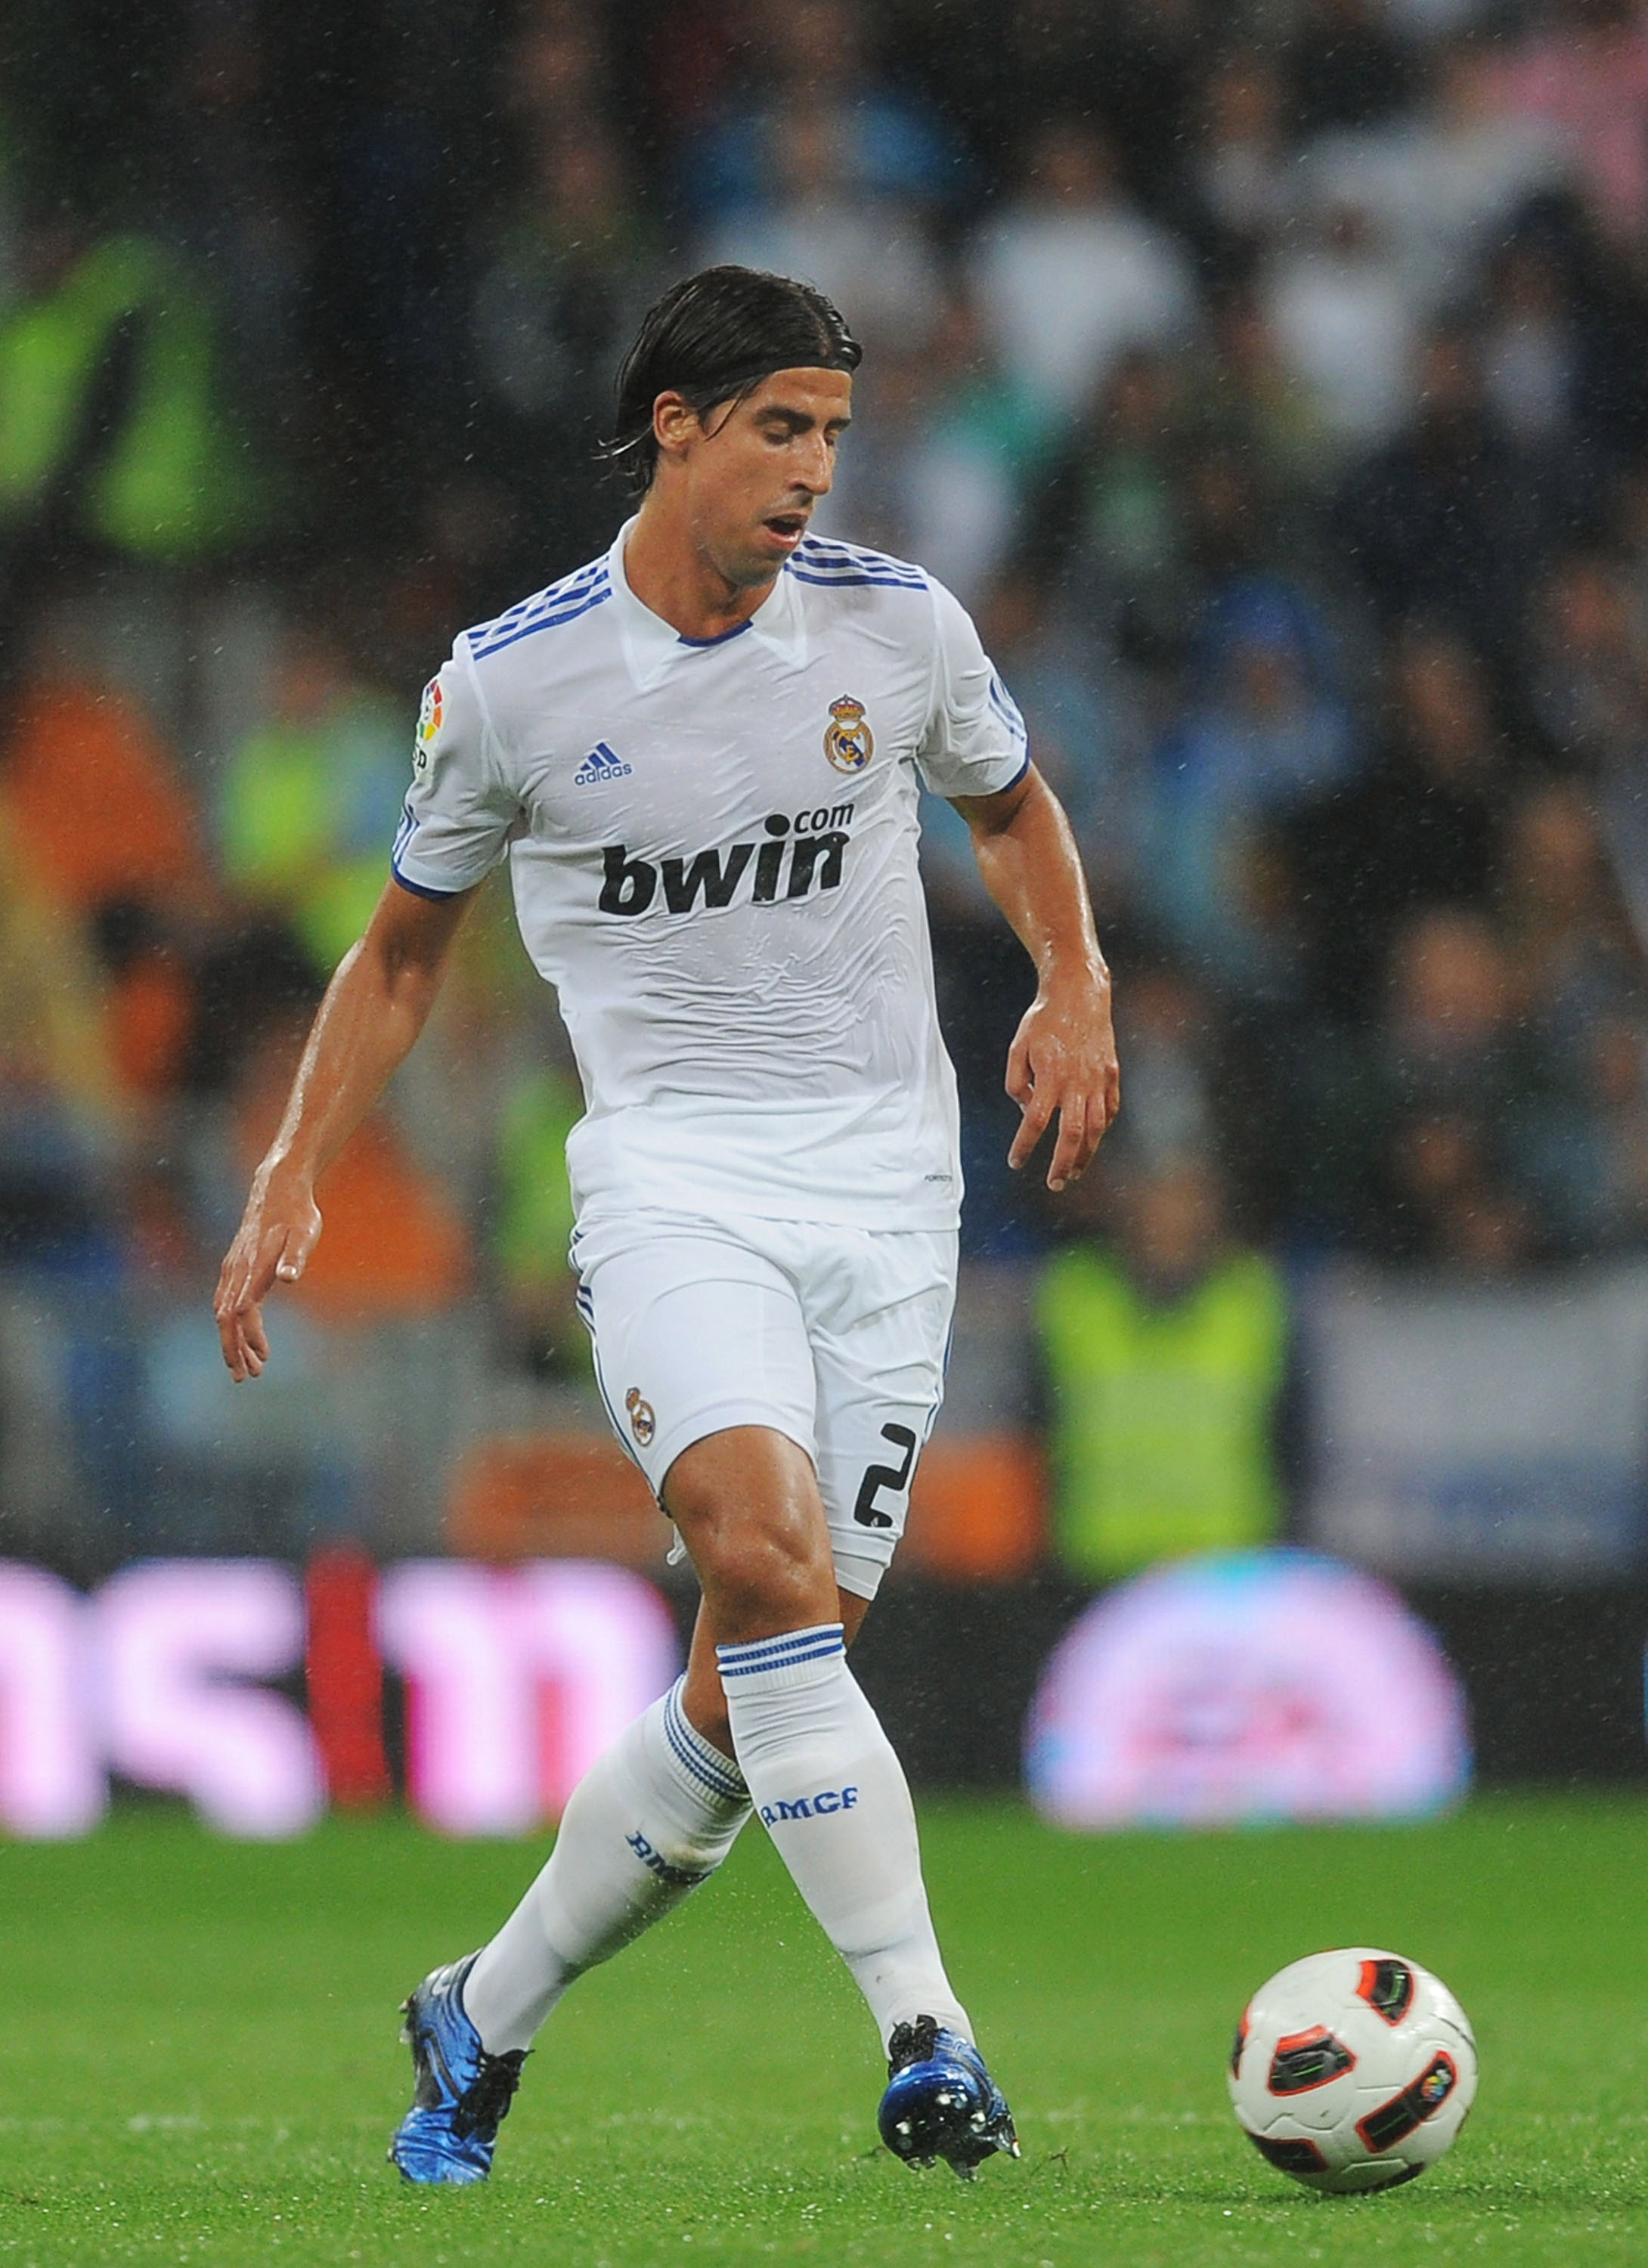 MADRID, SPAIN - OCTOBER 03:  Sami Khedira of Real Madrid in action during the La Liga match between Real Madrid and Deportivo La Coruna at Estadio Santiago Bernabeu on October 3, 2010 in Madrid, Spain.  (Photo by Denis Doyle/Getty Images)